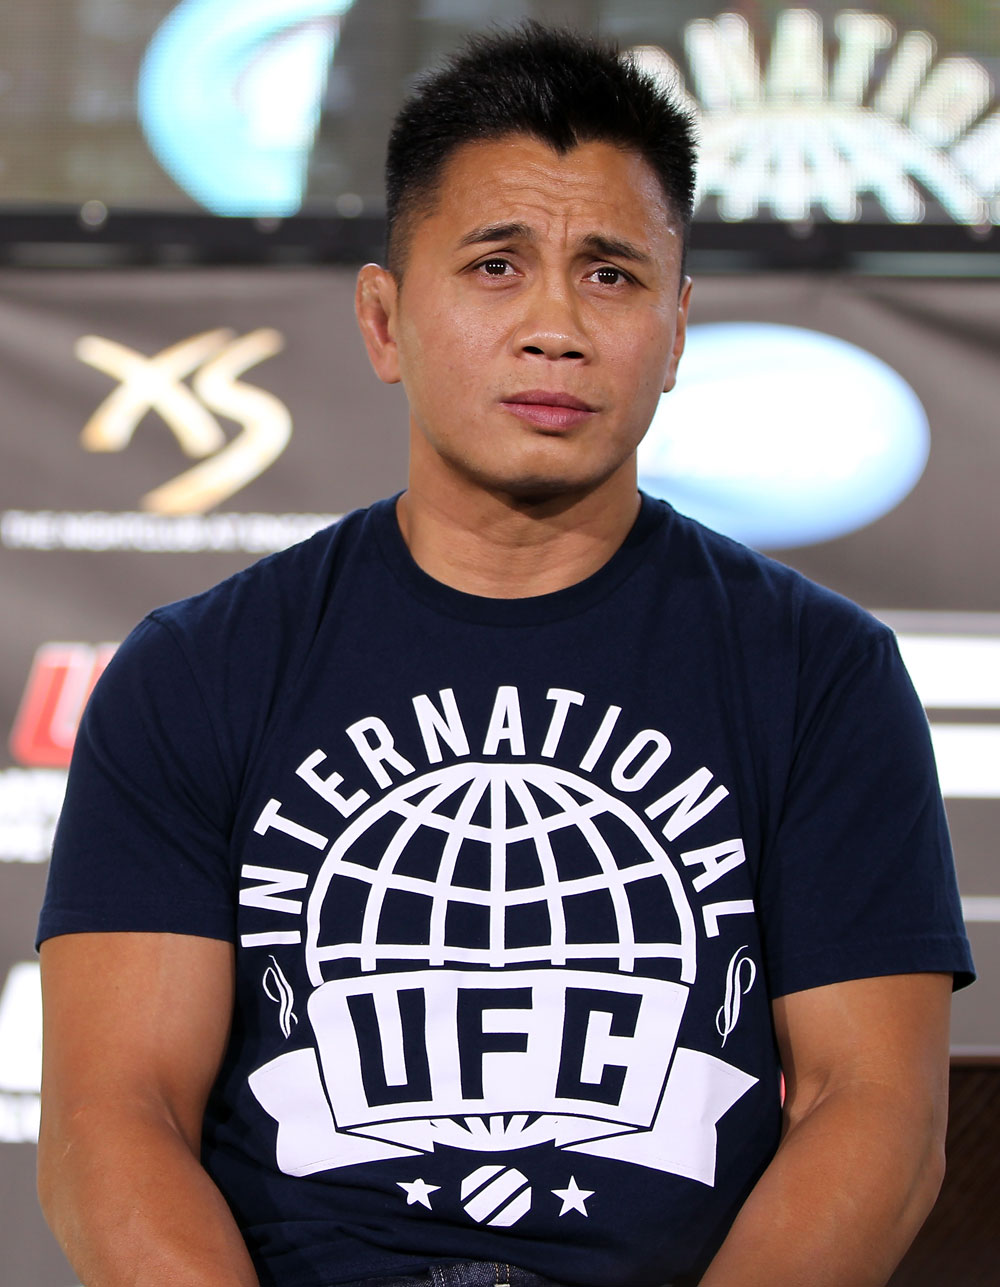 LAS VEGAS, NV - JULY 5:   Cung Le attends a pre-fight news conference before the UFC 148 Open Workouts inside XS nightclub at the Encore on July 5, 2012 in Las Vegas, Nevada.  (Photo by Josh Hedges/Zuffa LLC/Zuffa LLC via Getty Images)